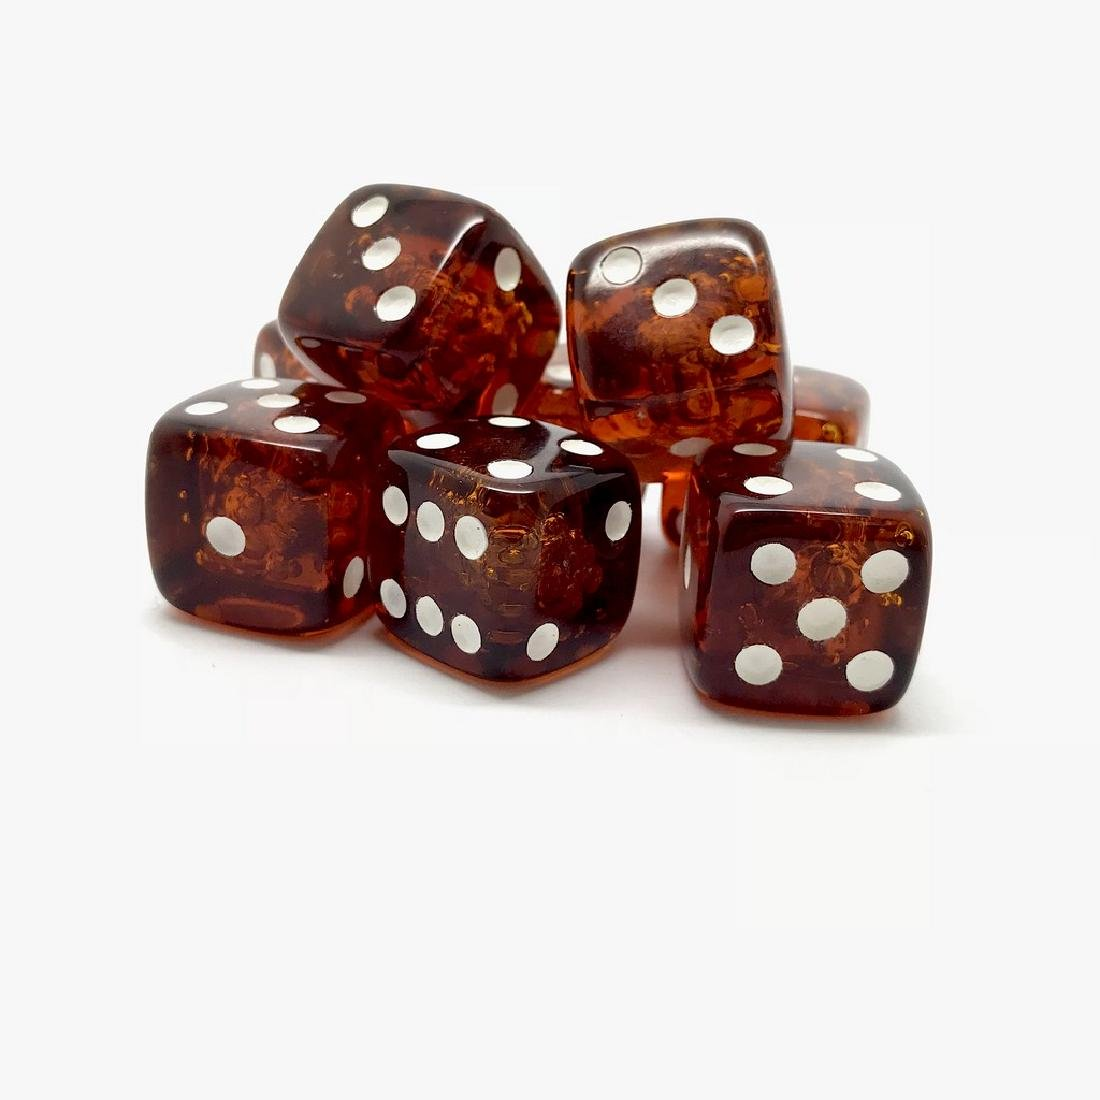 Baltic amber handcarved game dices 8pcs 17.5mm cognac - 6